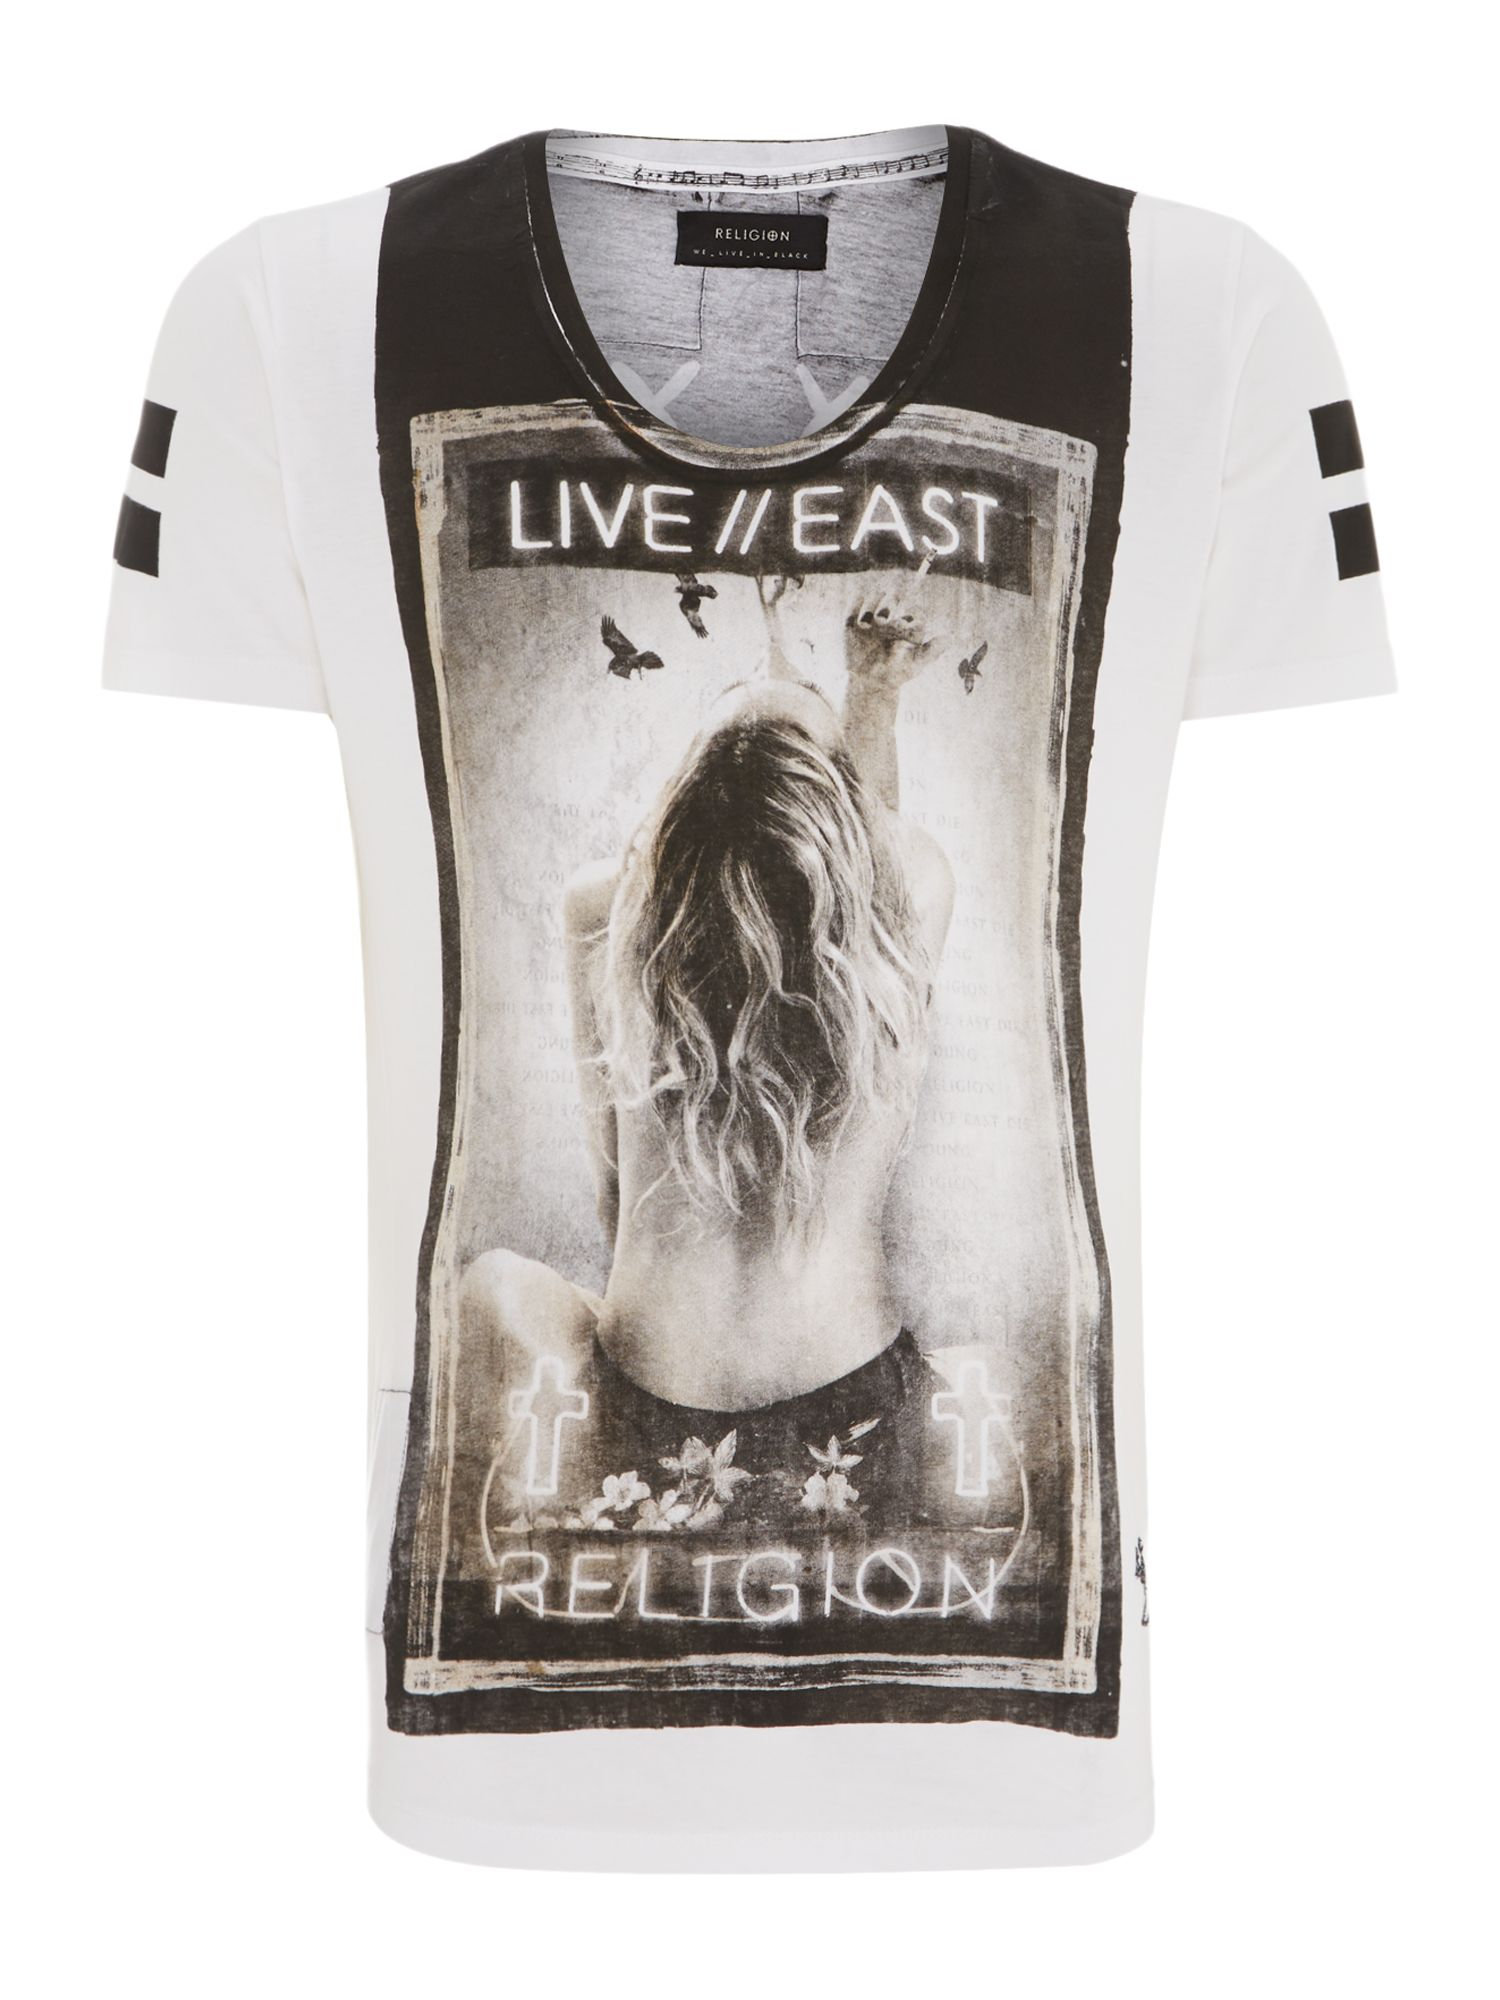 Live east graphic t shirt